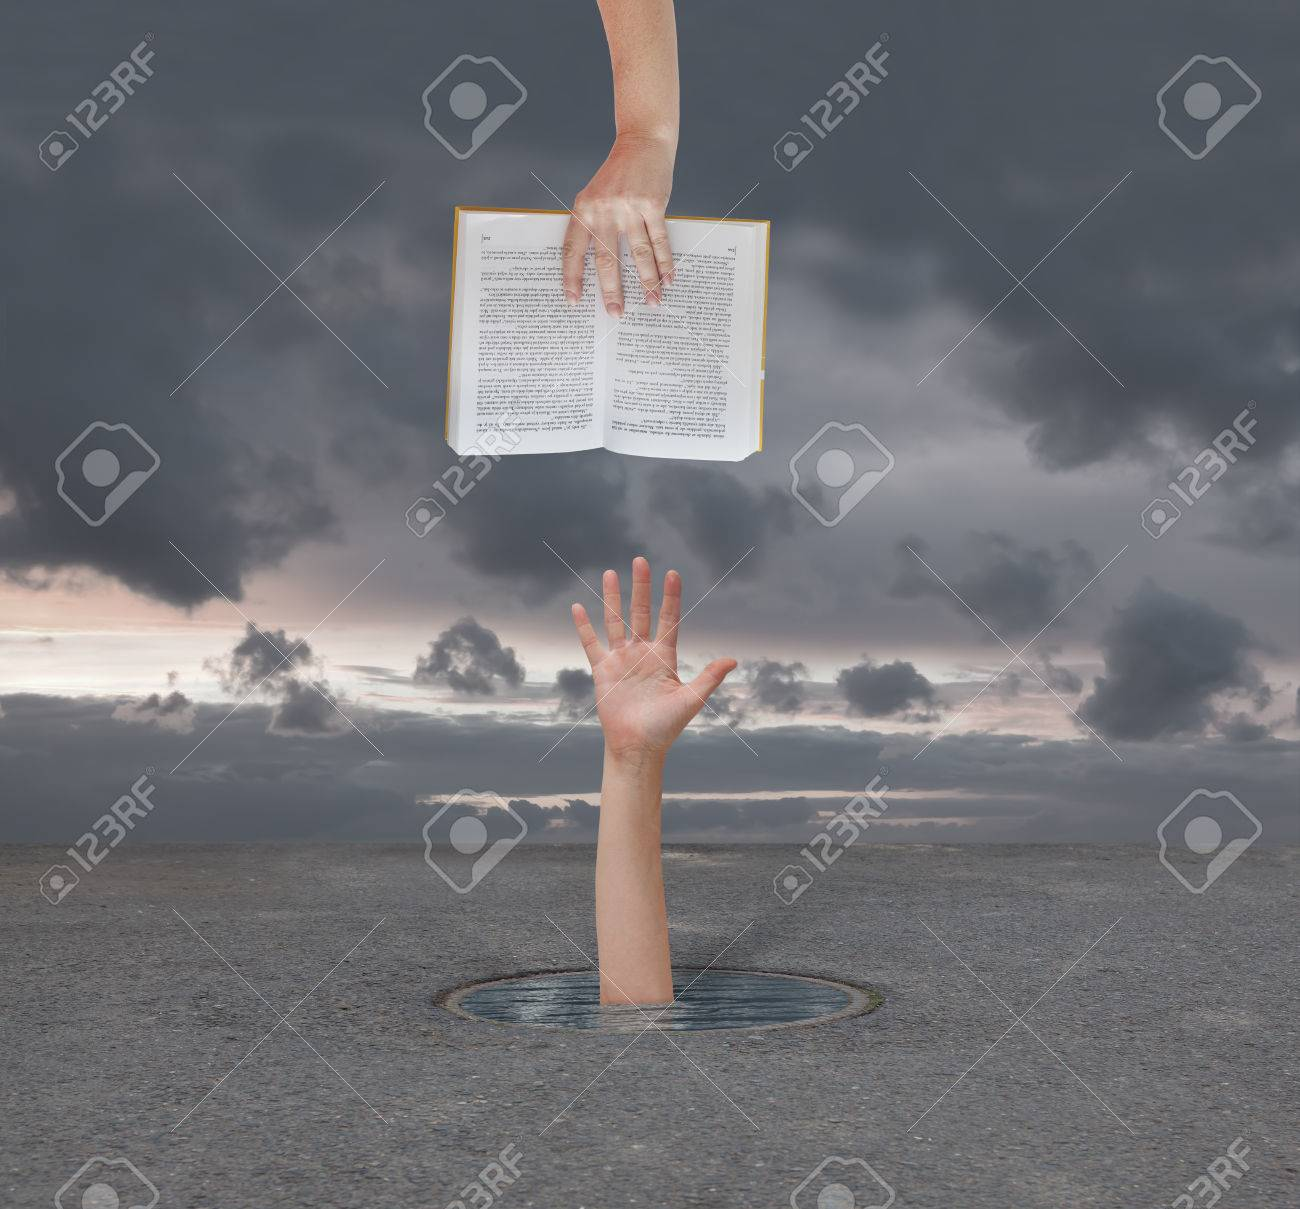 hand gives the book a man who is drowning Stock Photo - 33648129